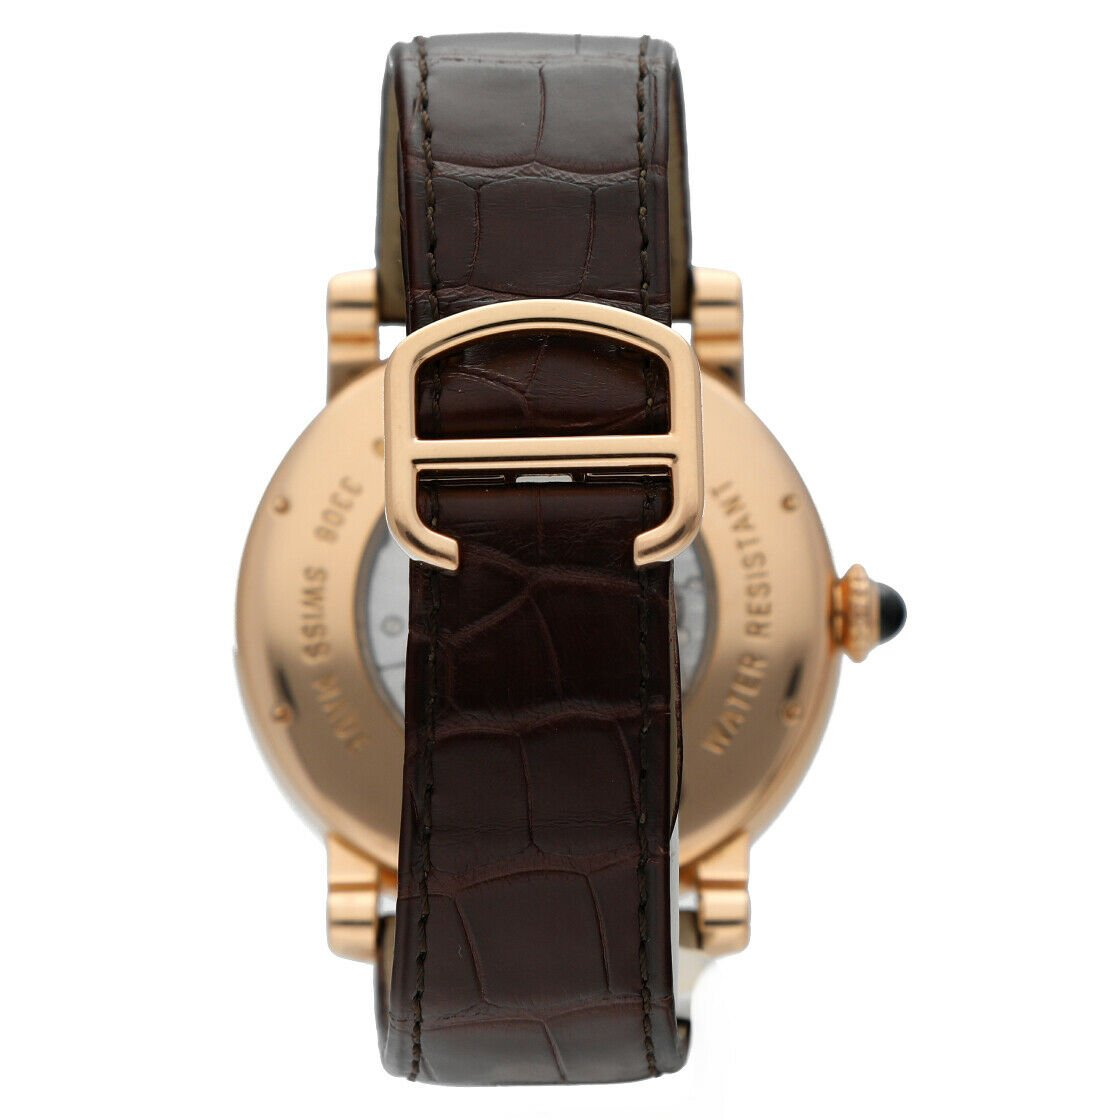 Cartier 3308 W1556205 Rotonde Astrotourbillon 18k Rose Gold Limited Mens Watch 124243384081 5